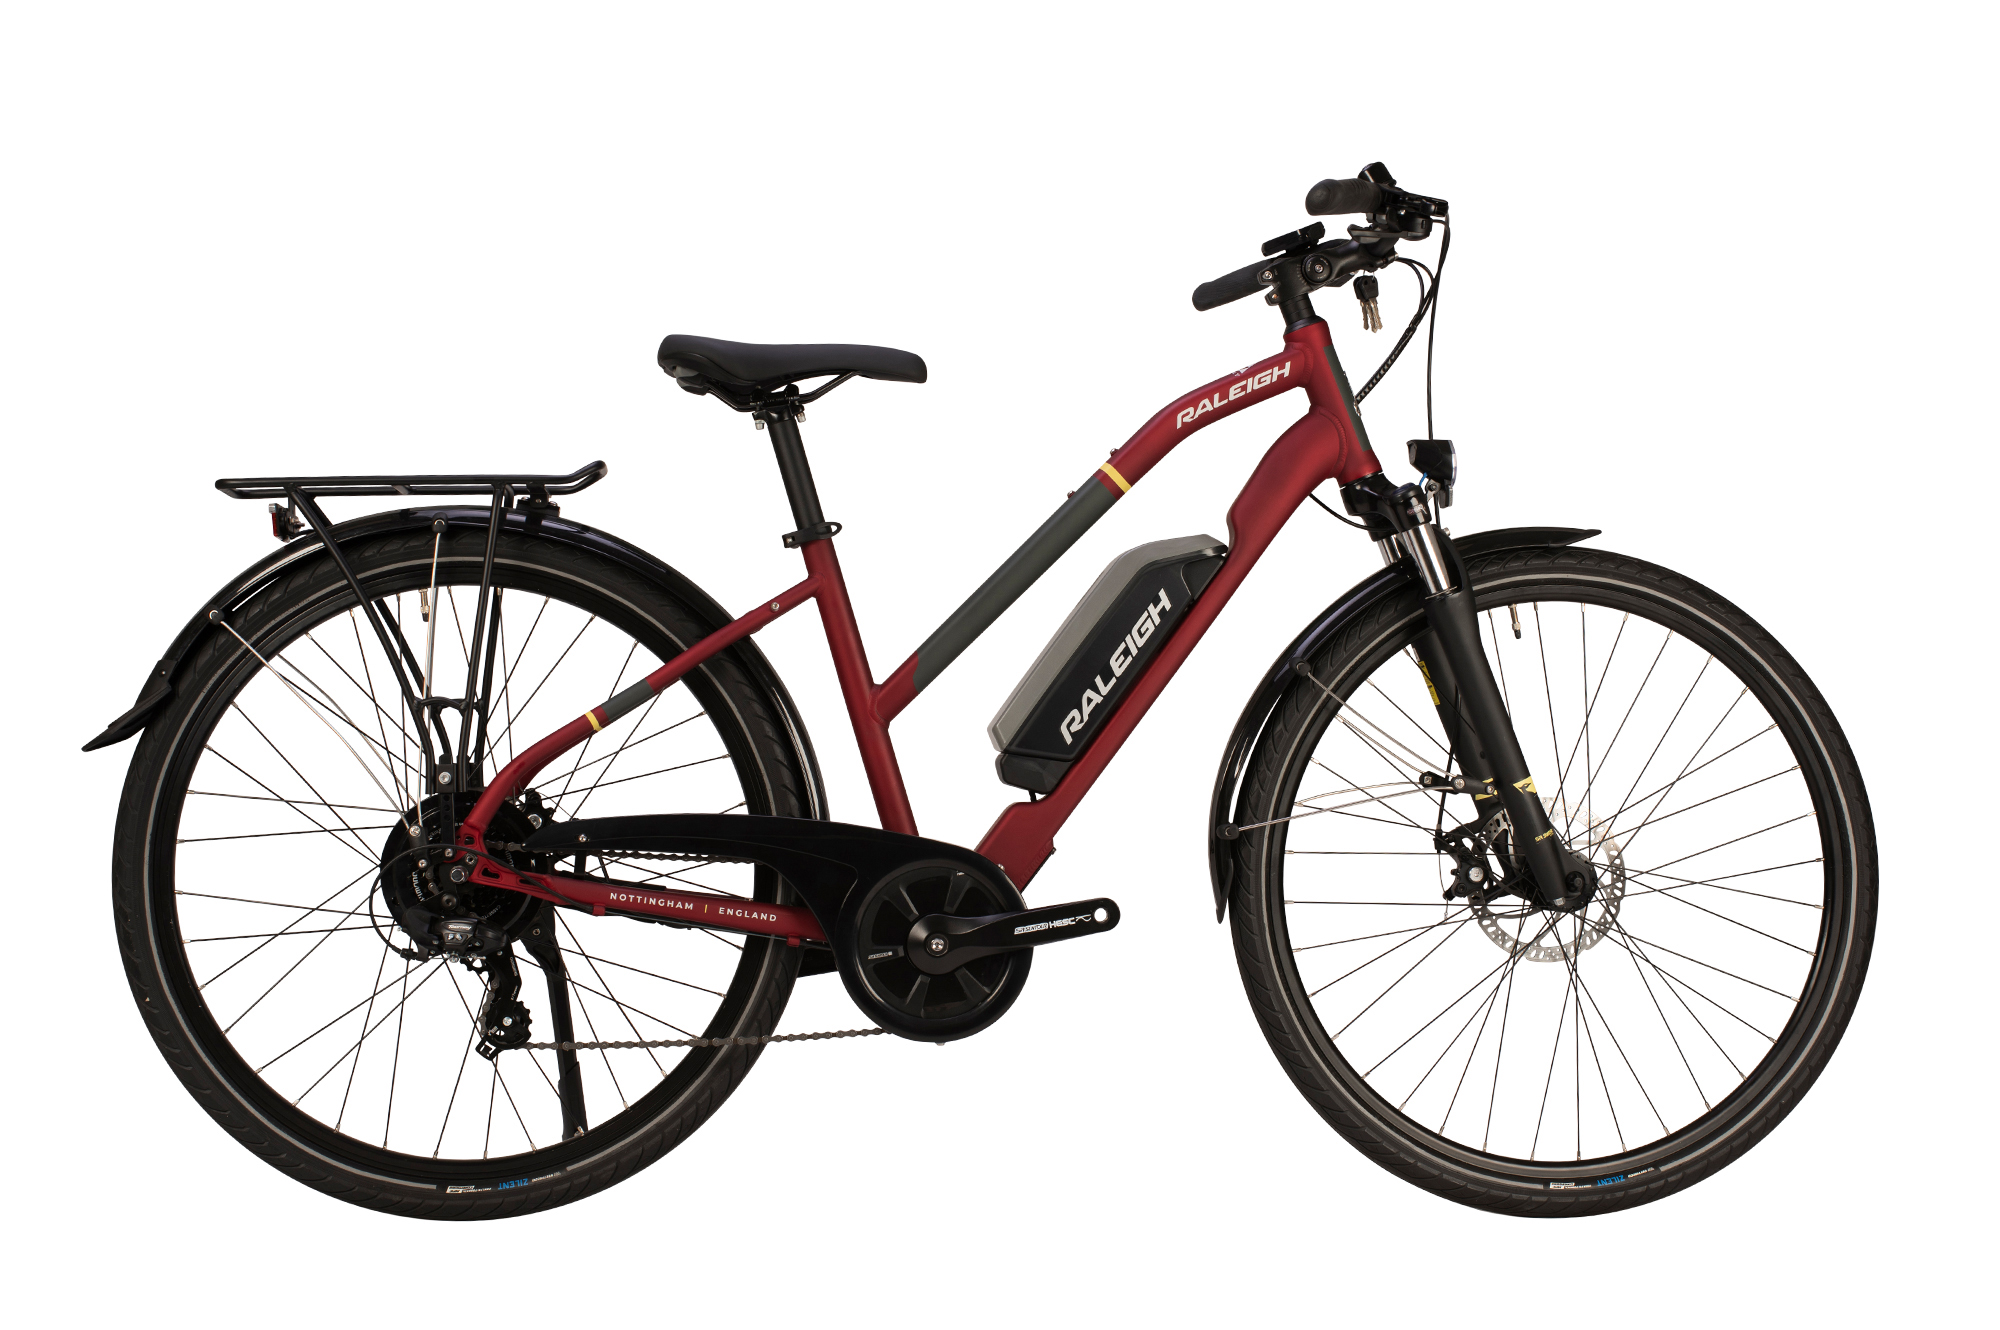 Raleigh Array electric bike with open frame